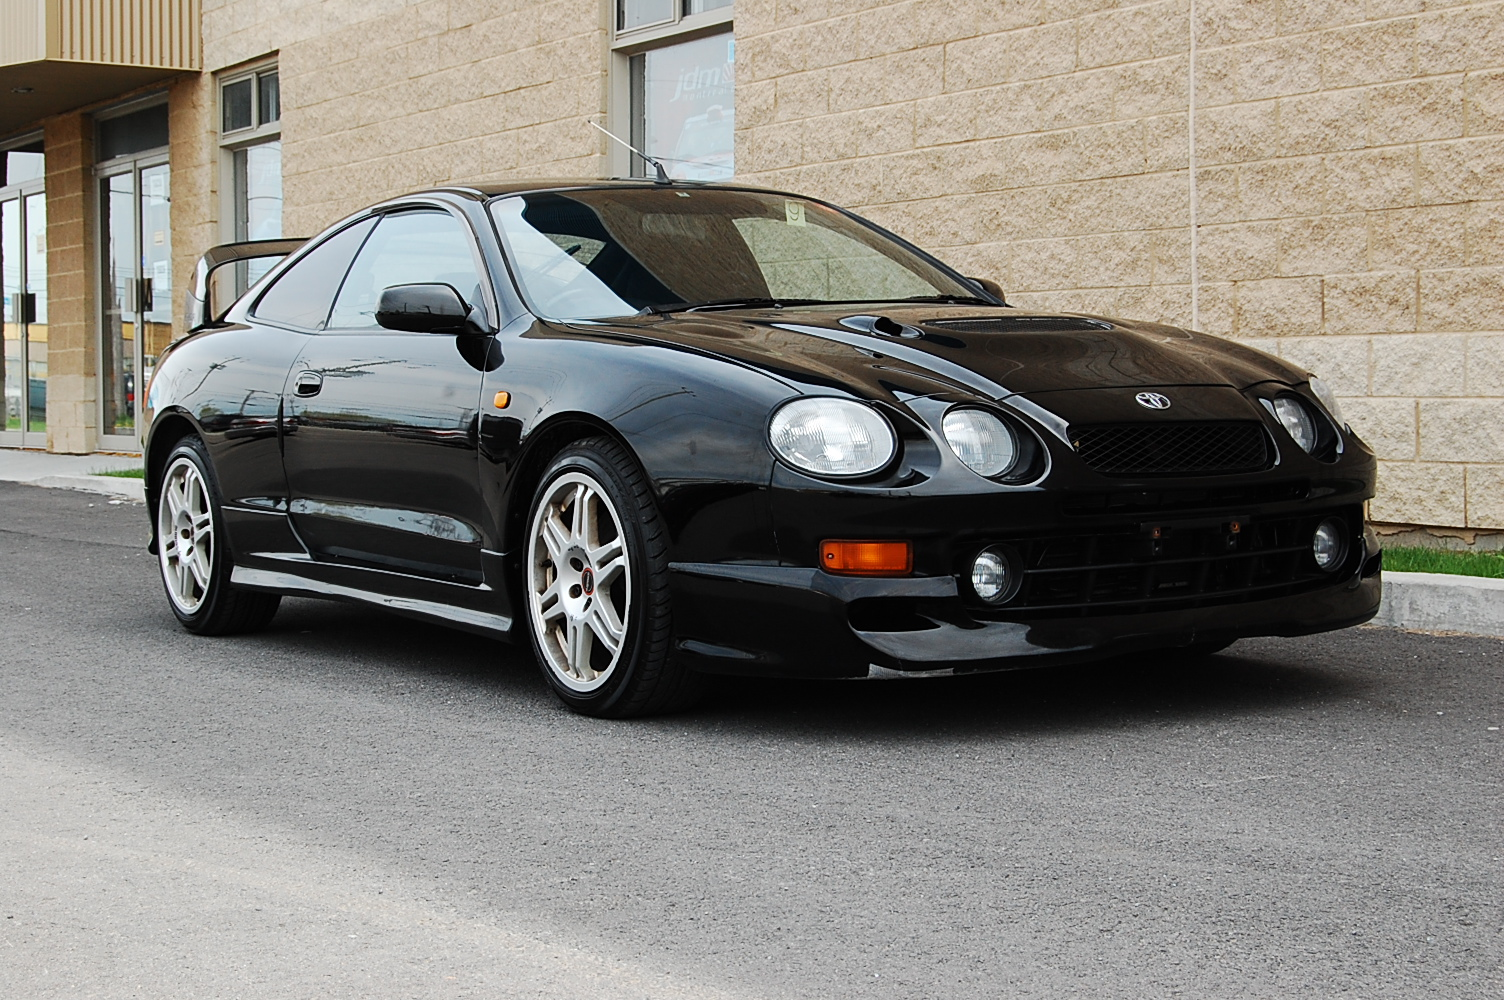 Toyota Corolla Configurations >> 3DTuning of Toyota Celica GT-Four Coupe 1994 3DTuning.com ...